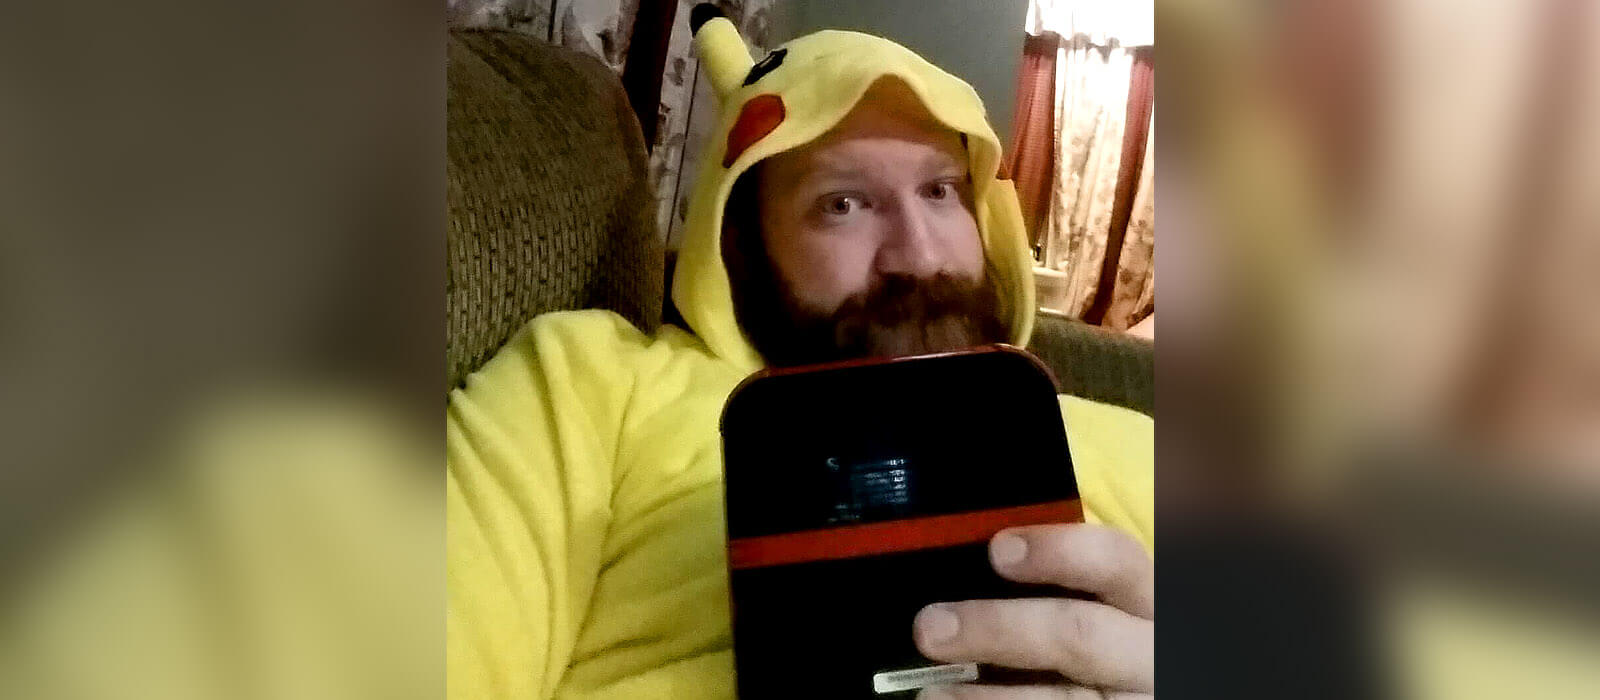 Me in my union suit (Kigurumi) playing Pokemon Moon.